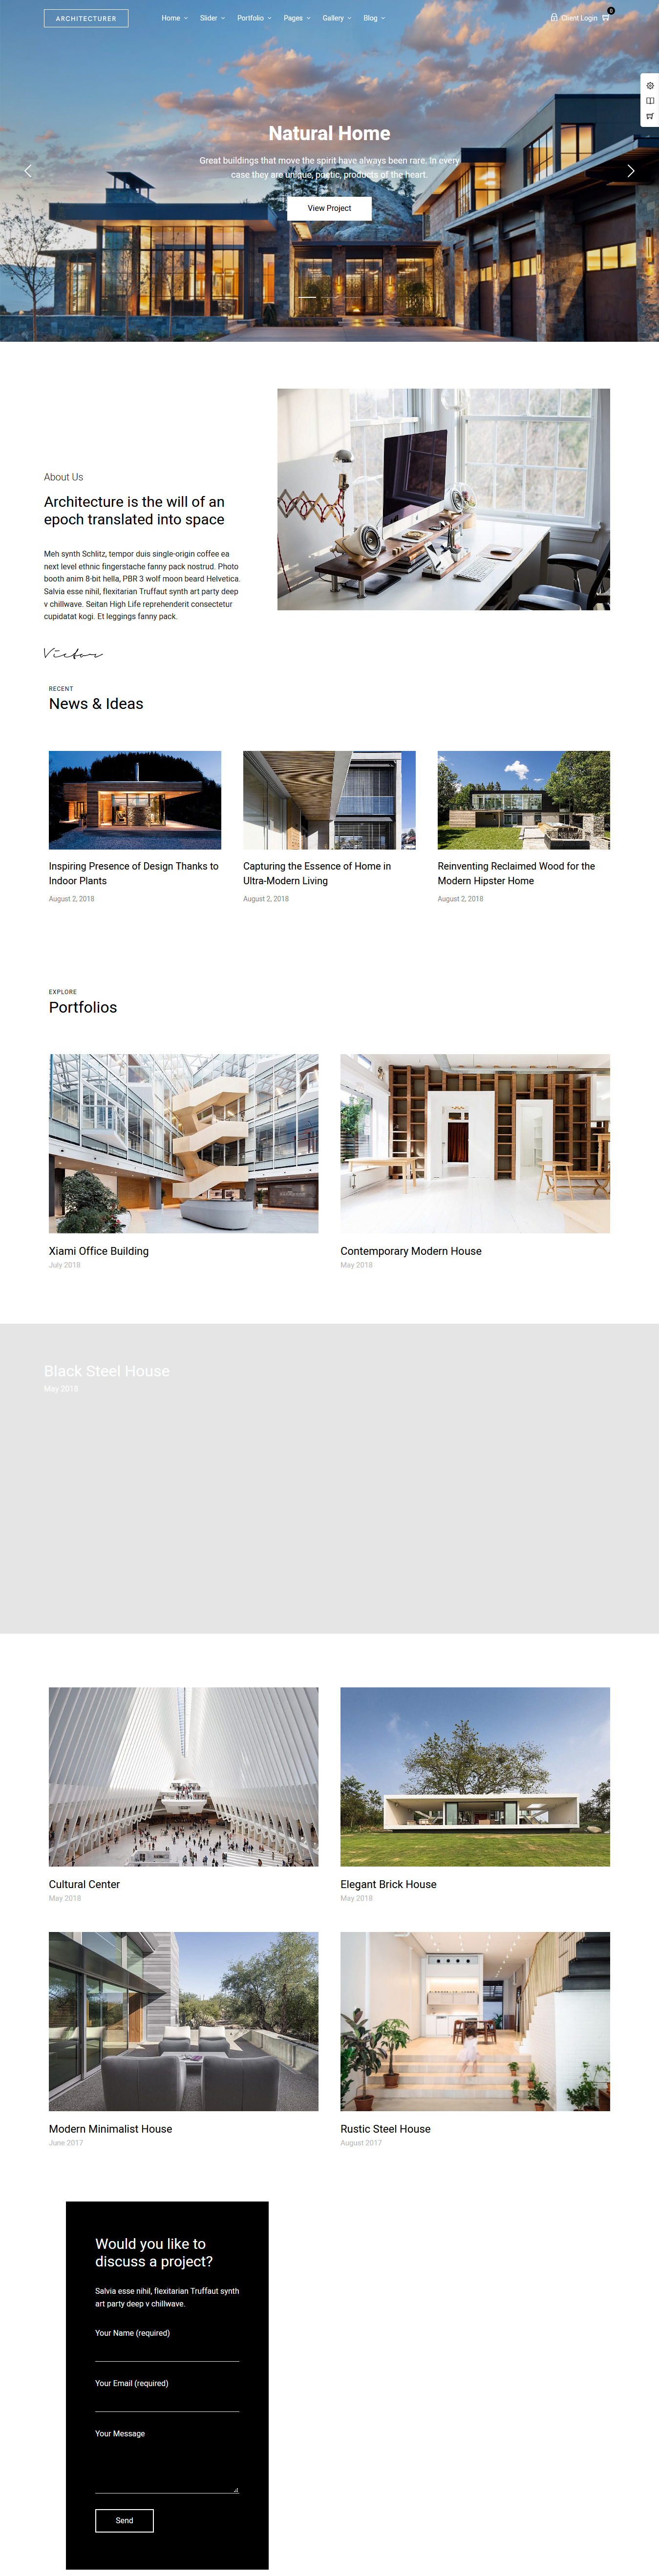 Architecturer – Best Premium Multilingual WordPress Theme